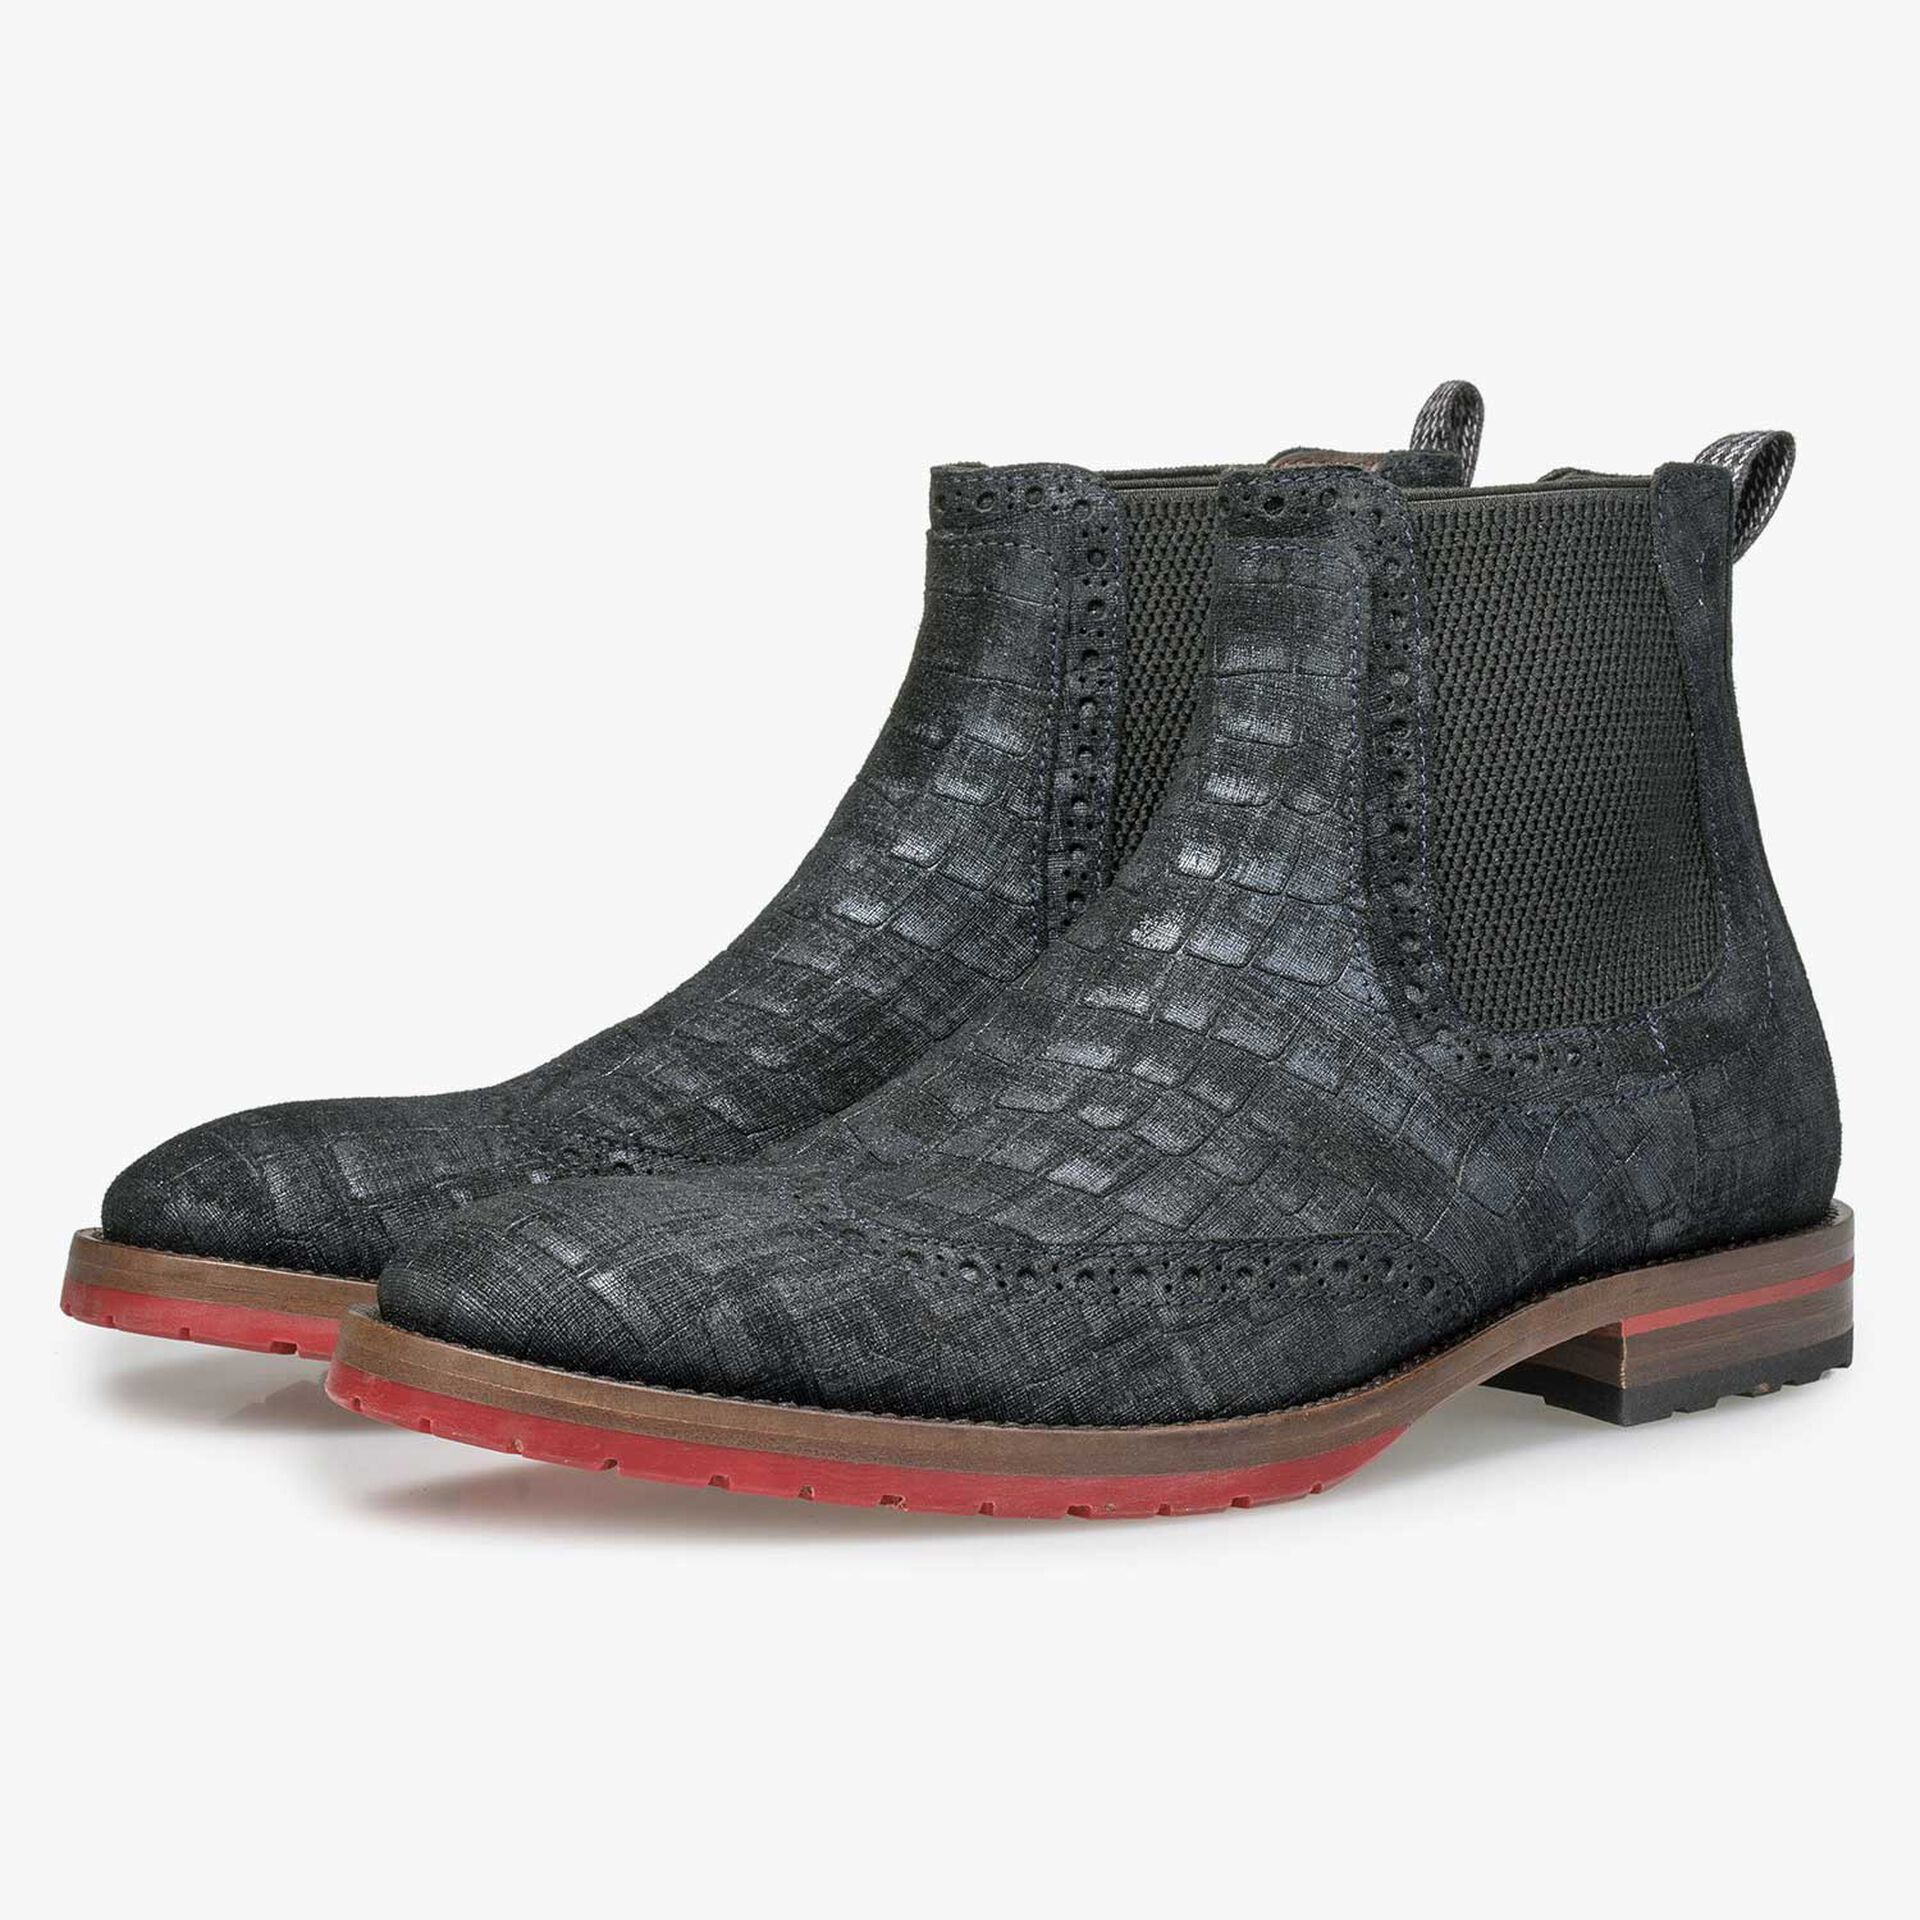 Blue suede Chelsea boot with check pattern